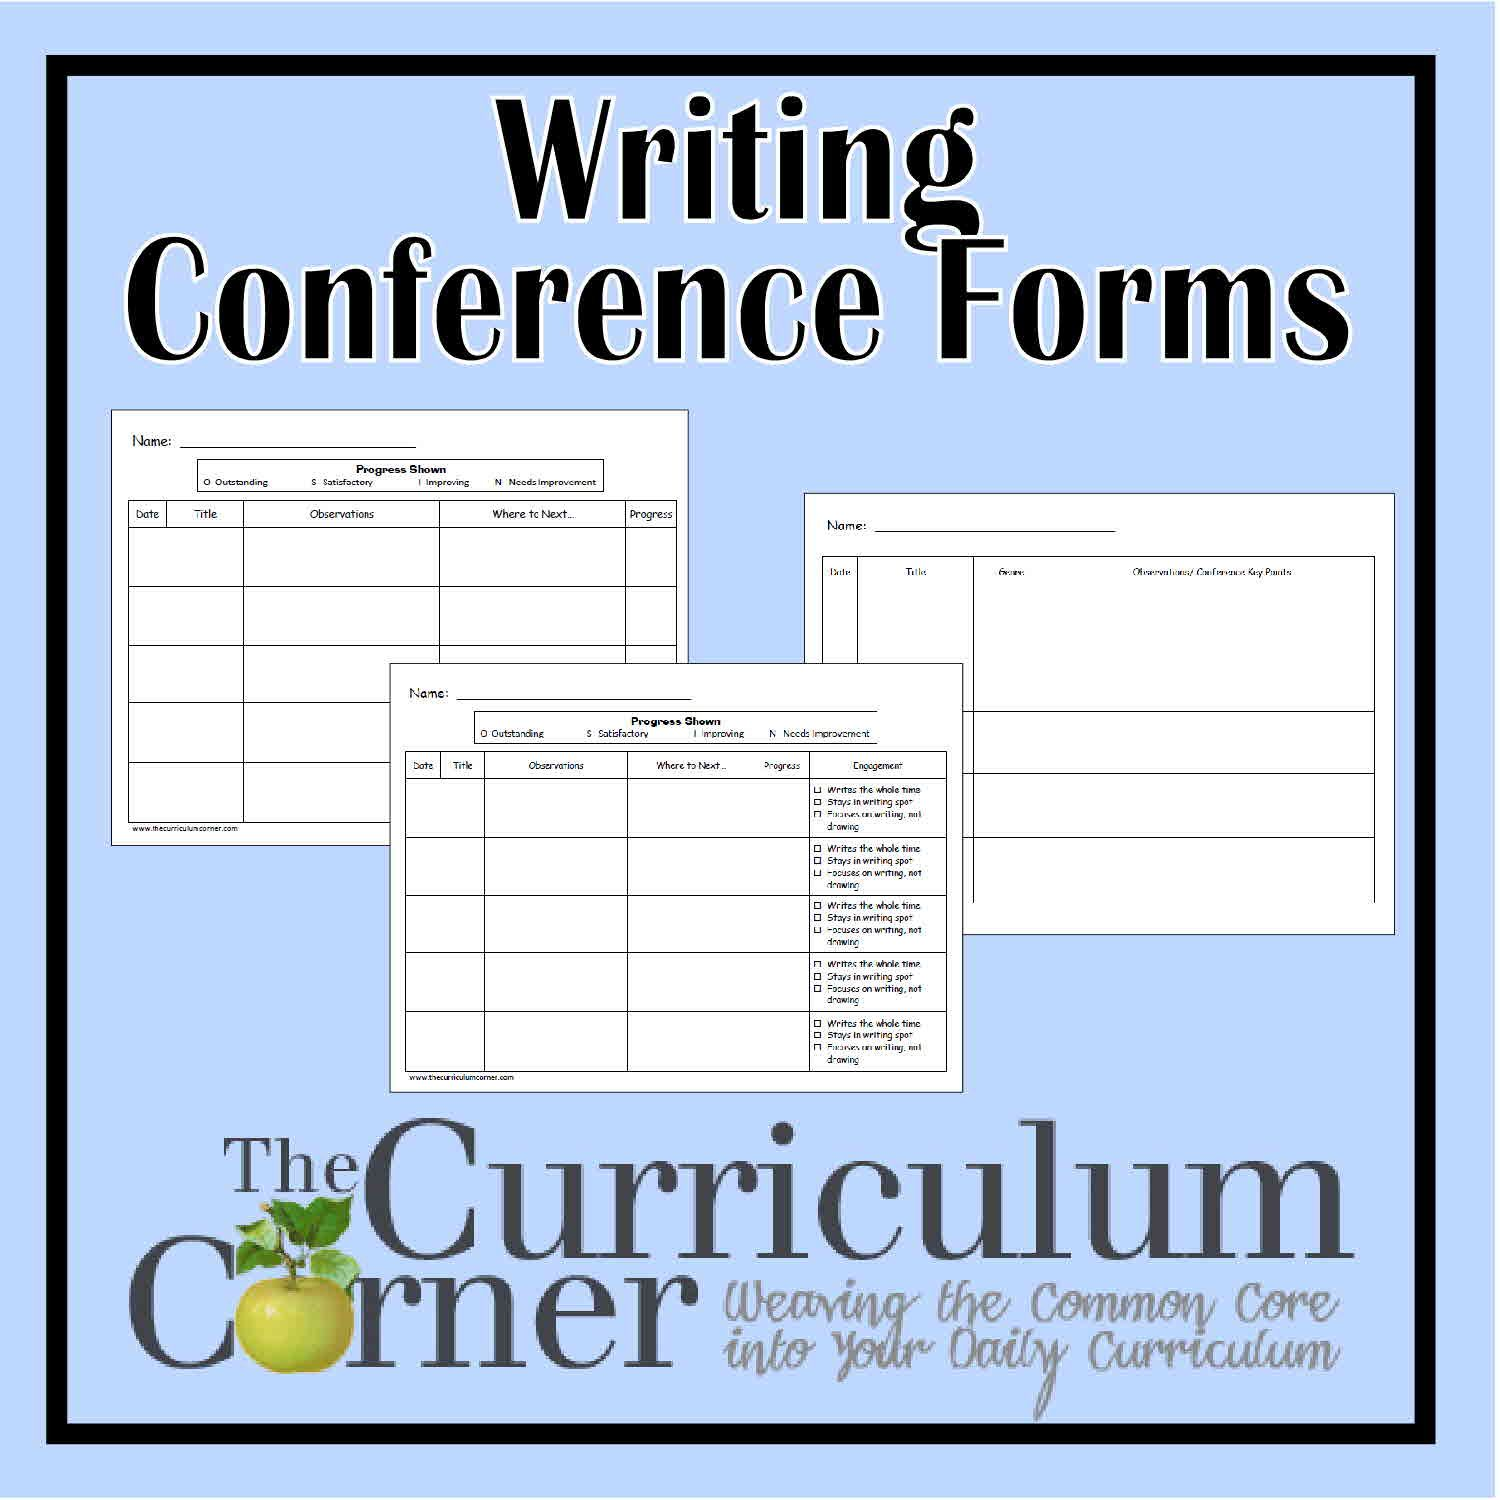 Writing Conference Forms | Pdf, Third and Curriculum